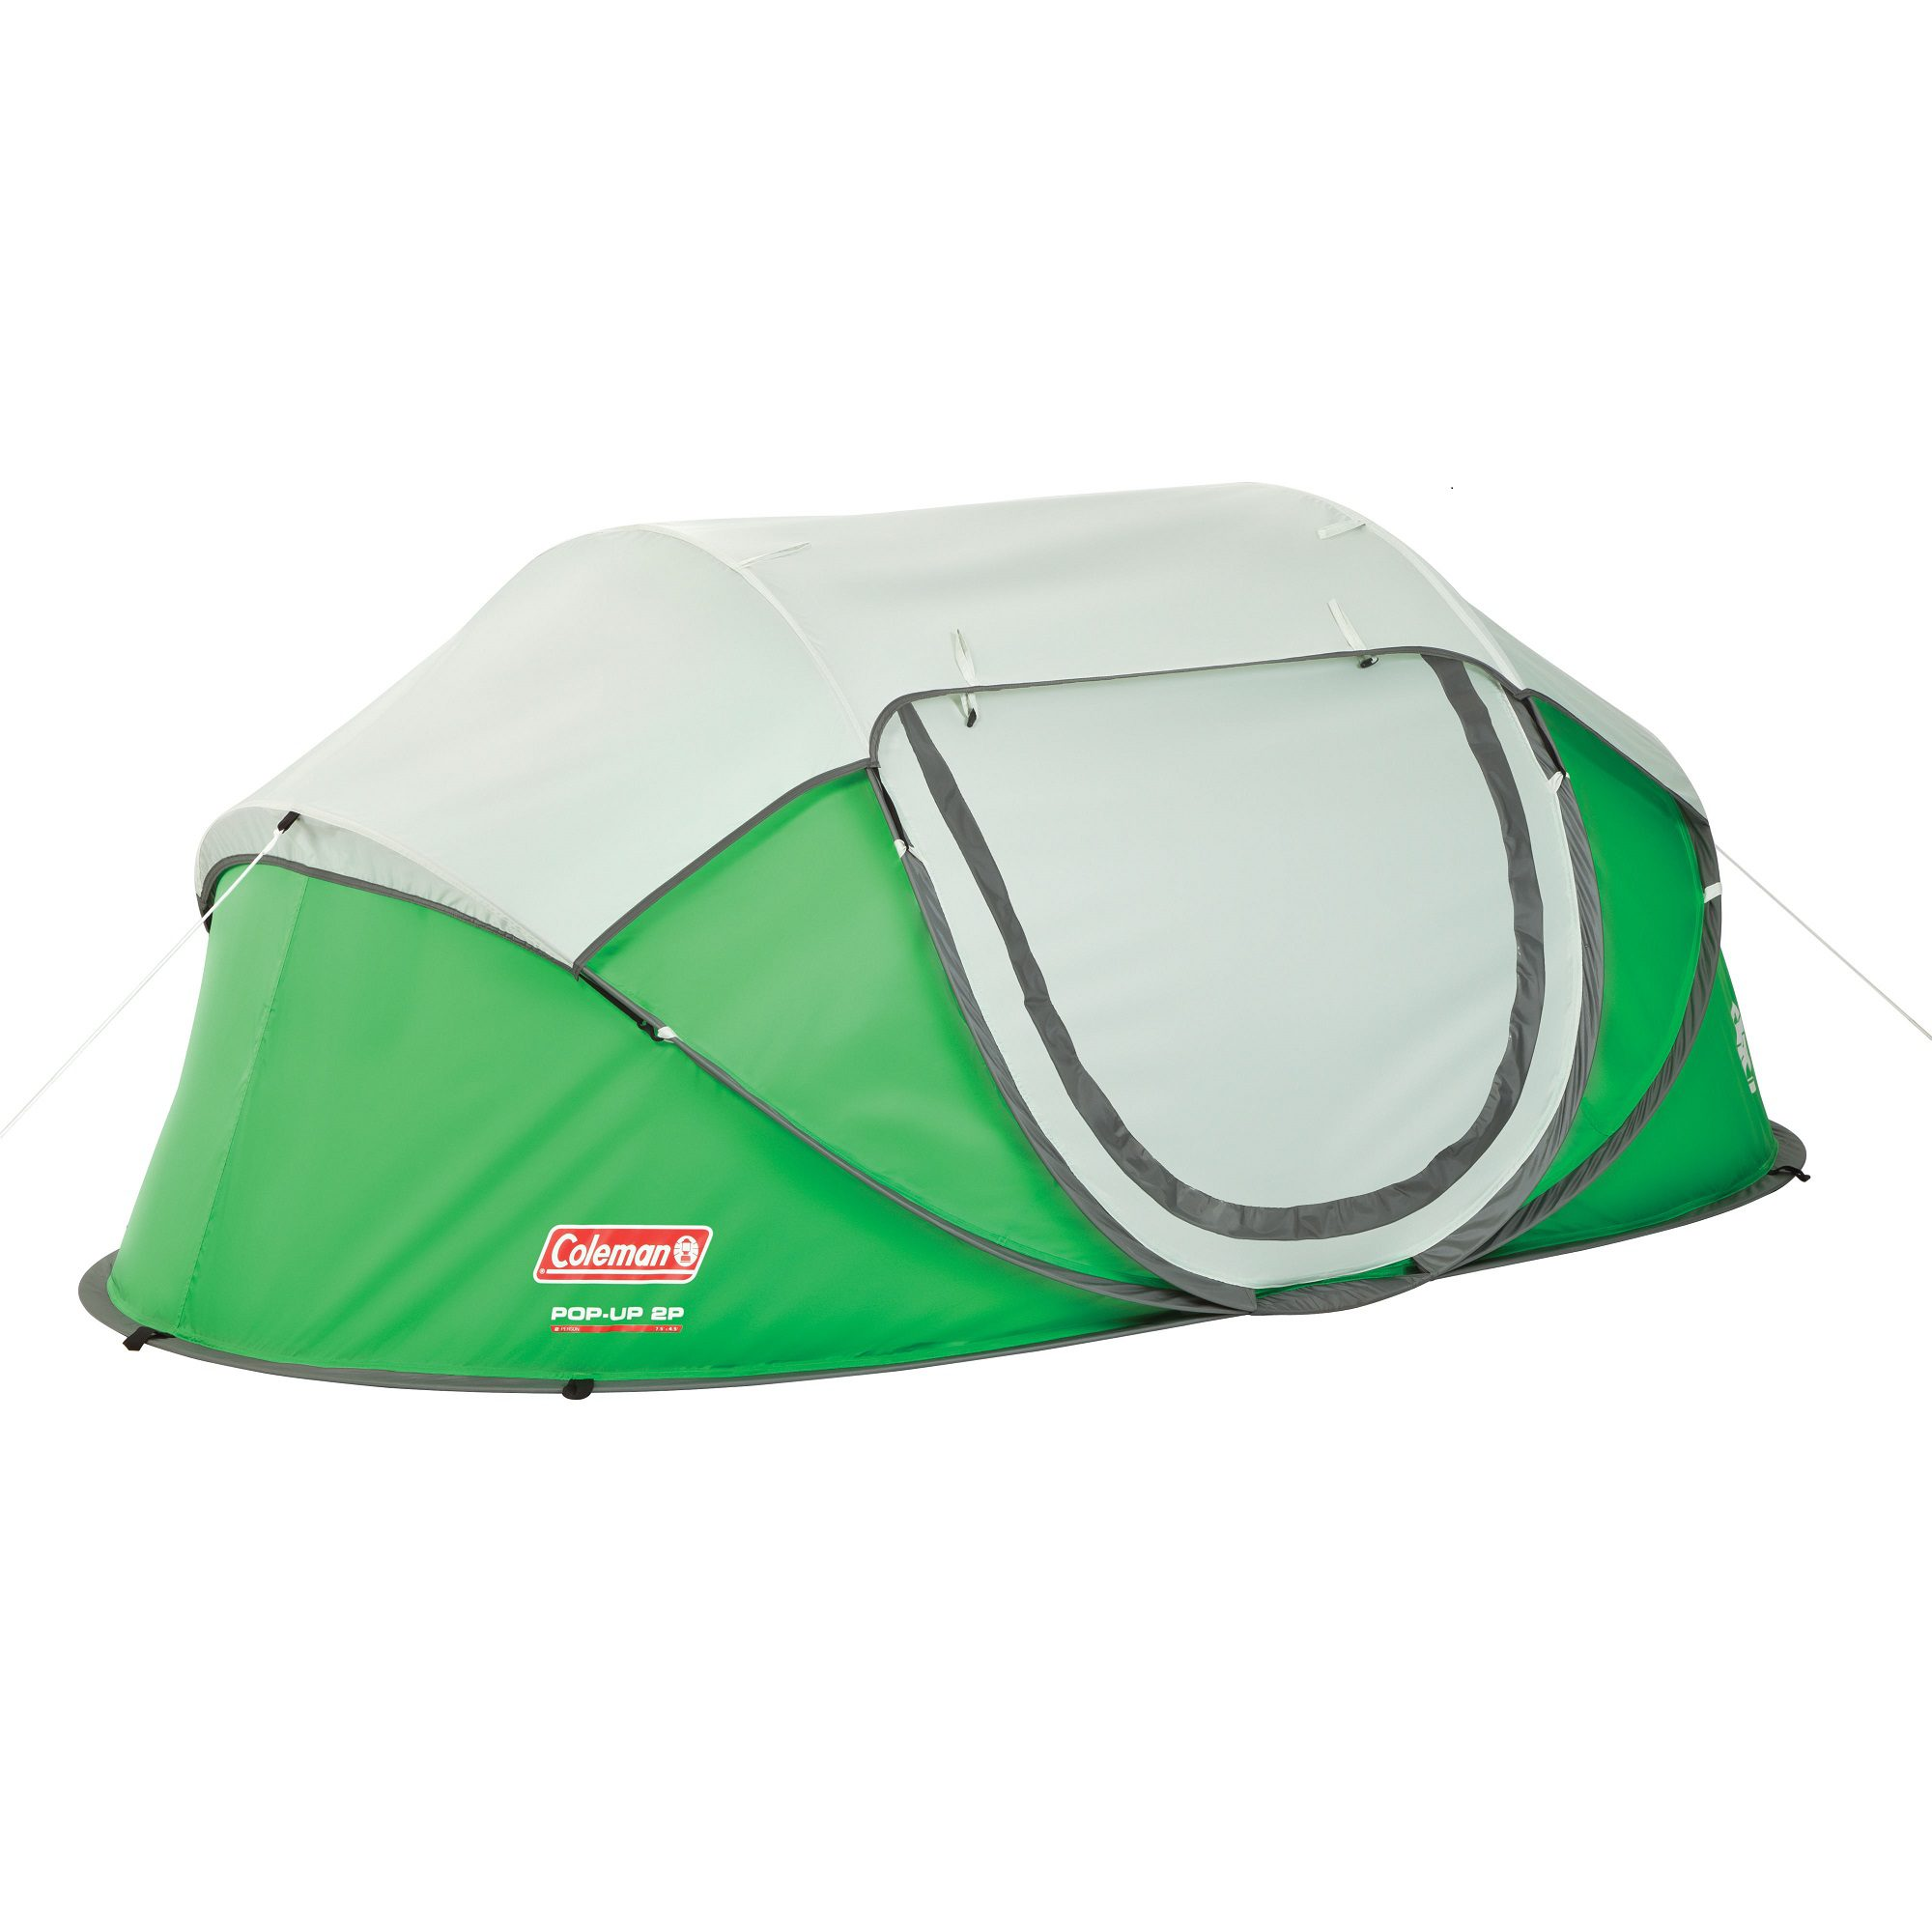 Coleman Fastpitch Galiano 2 Tent 2016 - 2000024837